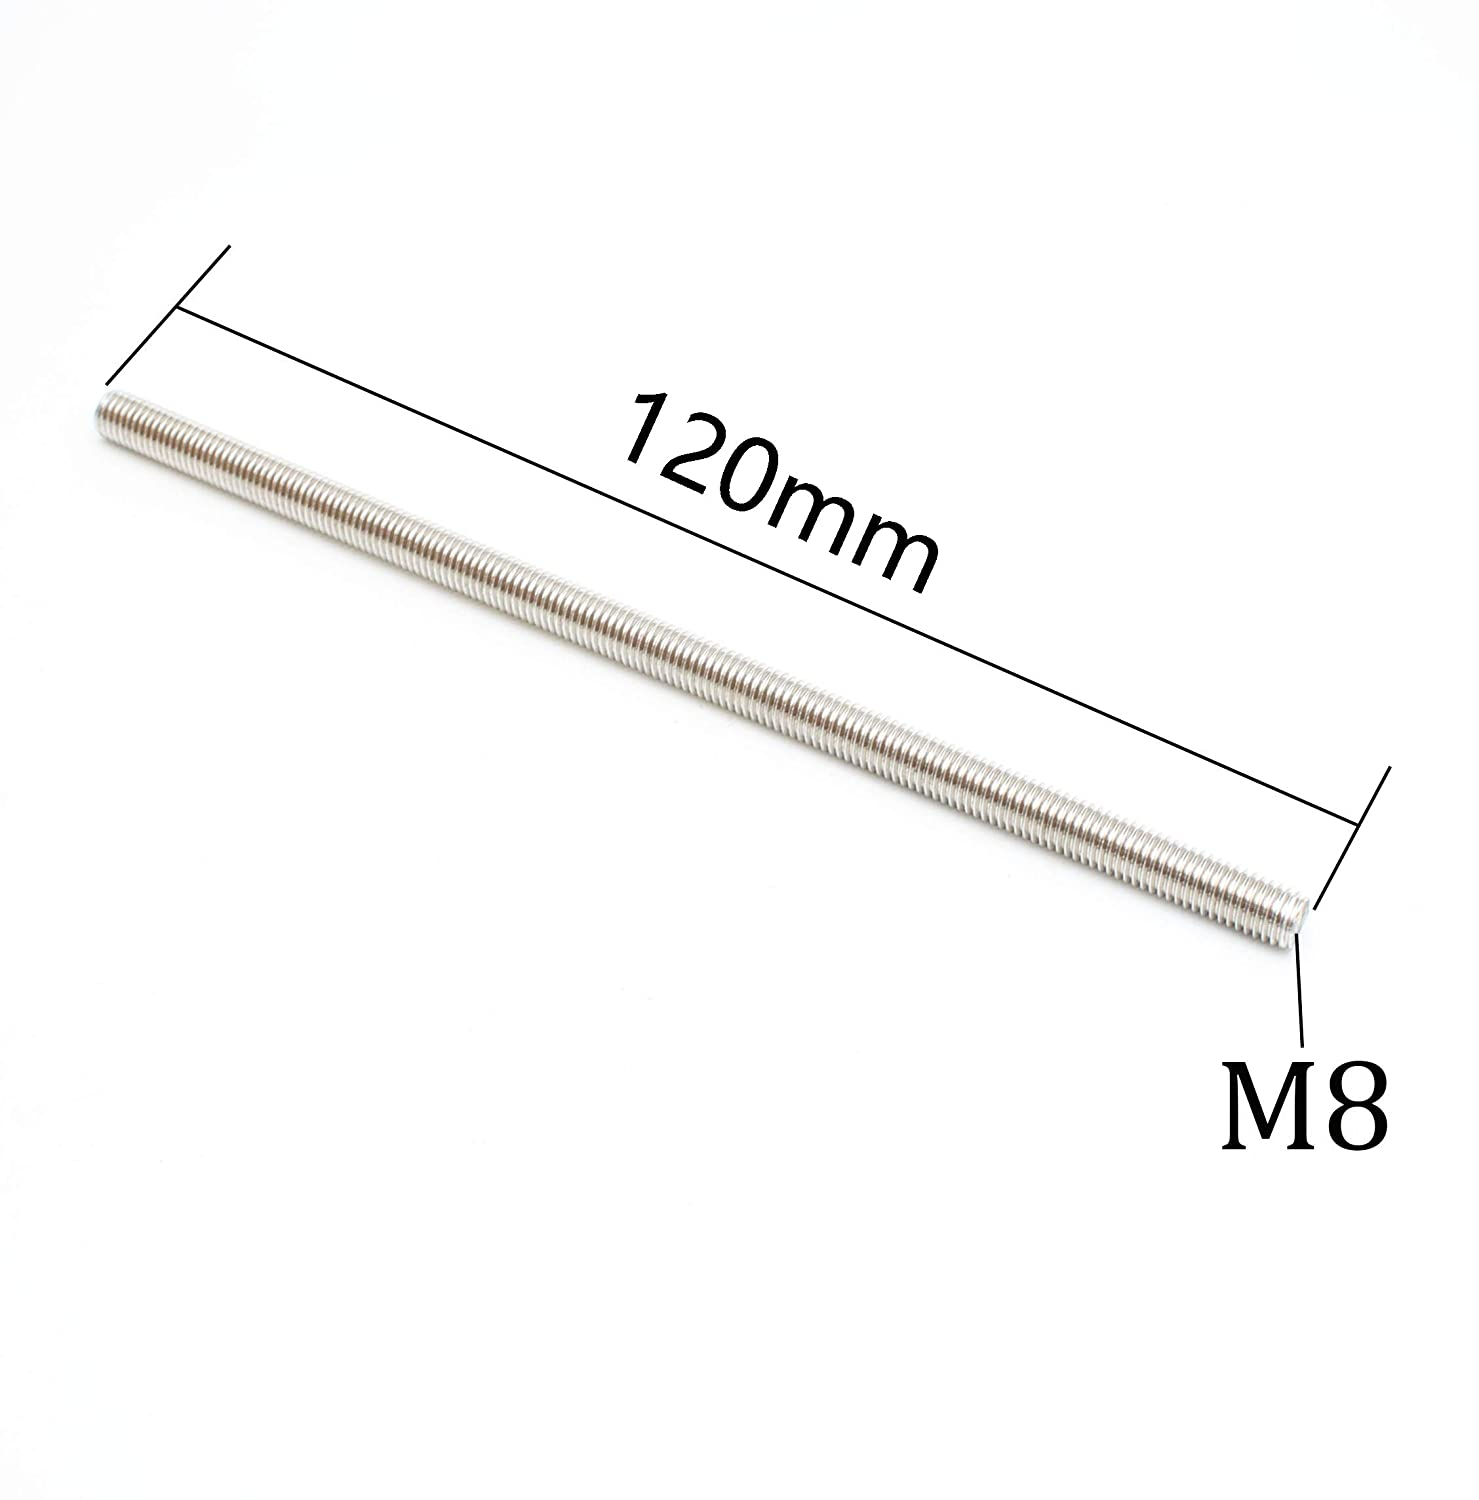 Right Hand Thread 5 Pieces Smartsails M8 x 120mm,304 Stainless Steel Full Threaded Rod